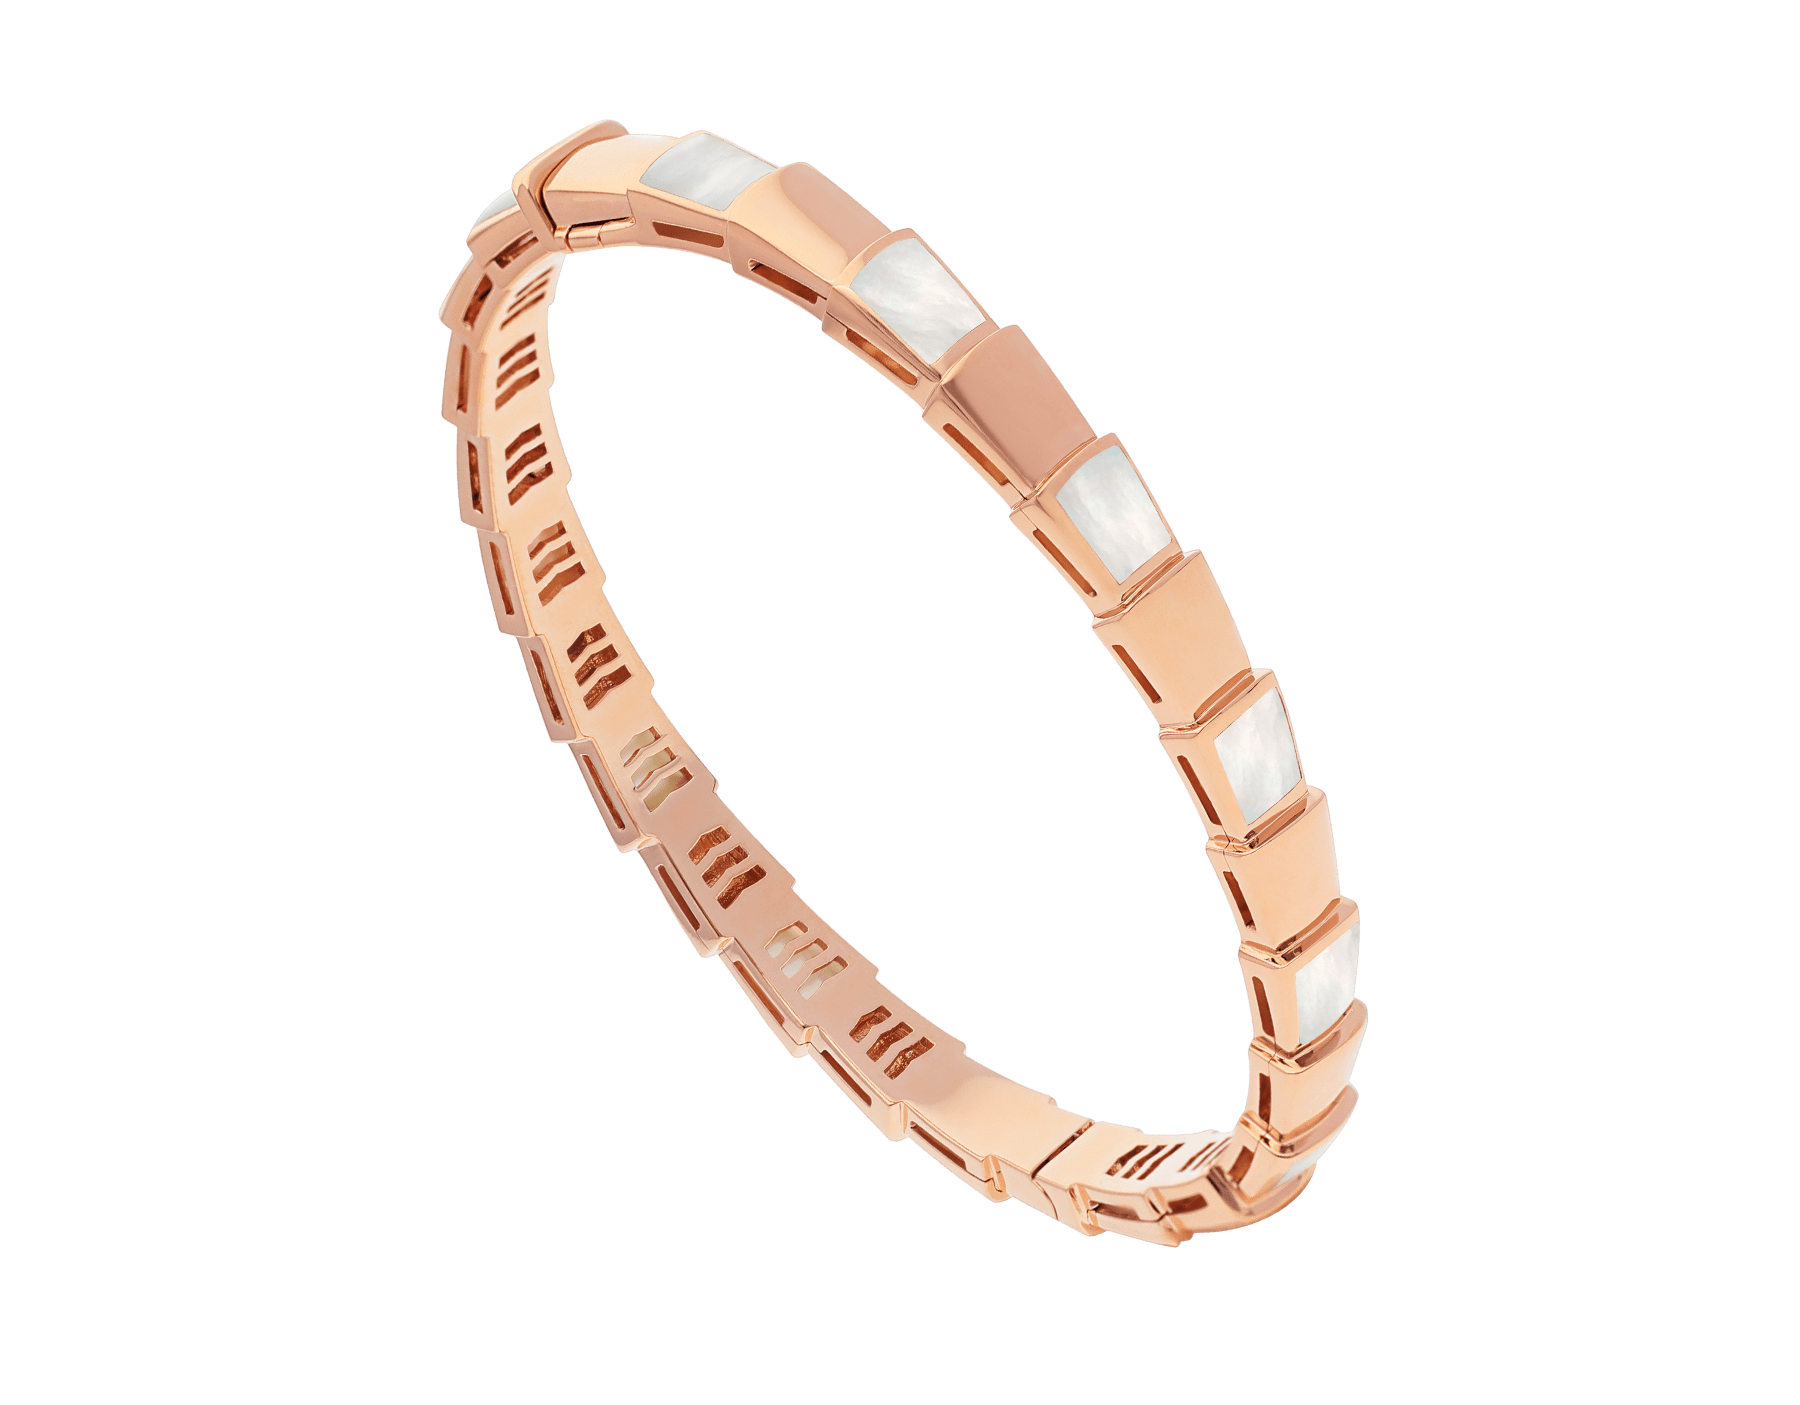 Serpenti Viper 18 kt rose gold bracelet set with mother-of-pearl elements. (height 6 mm) BR858419 image 1